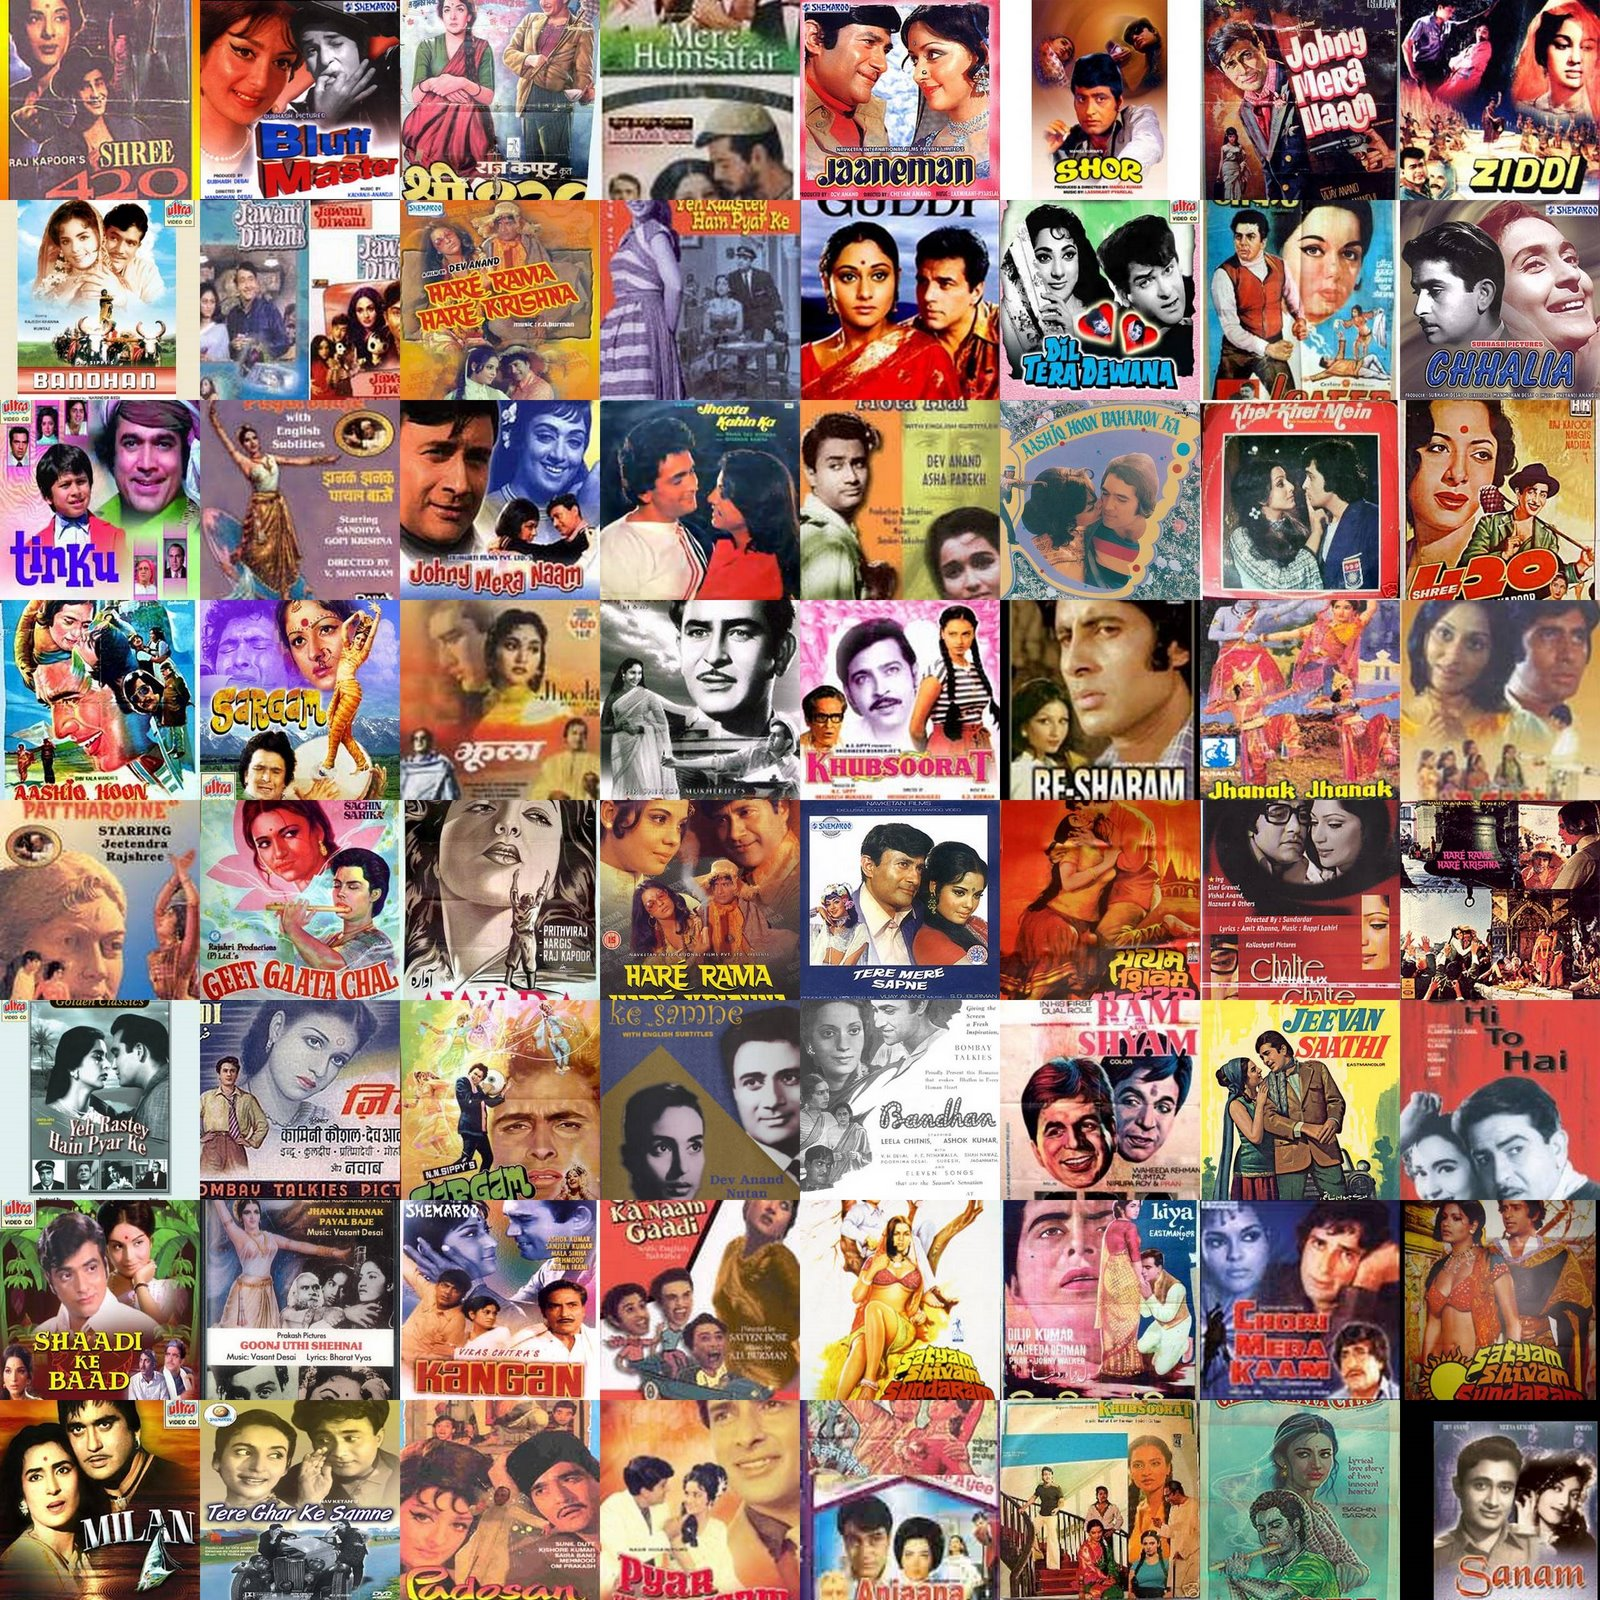 100 years of bollywood 100 years of indian cinema 100 years of heroes chasing heroines to win their hand in marriage the fashion orientalist breaks down four different typical bollywood.